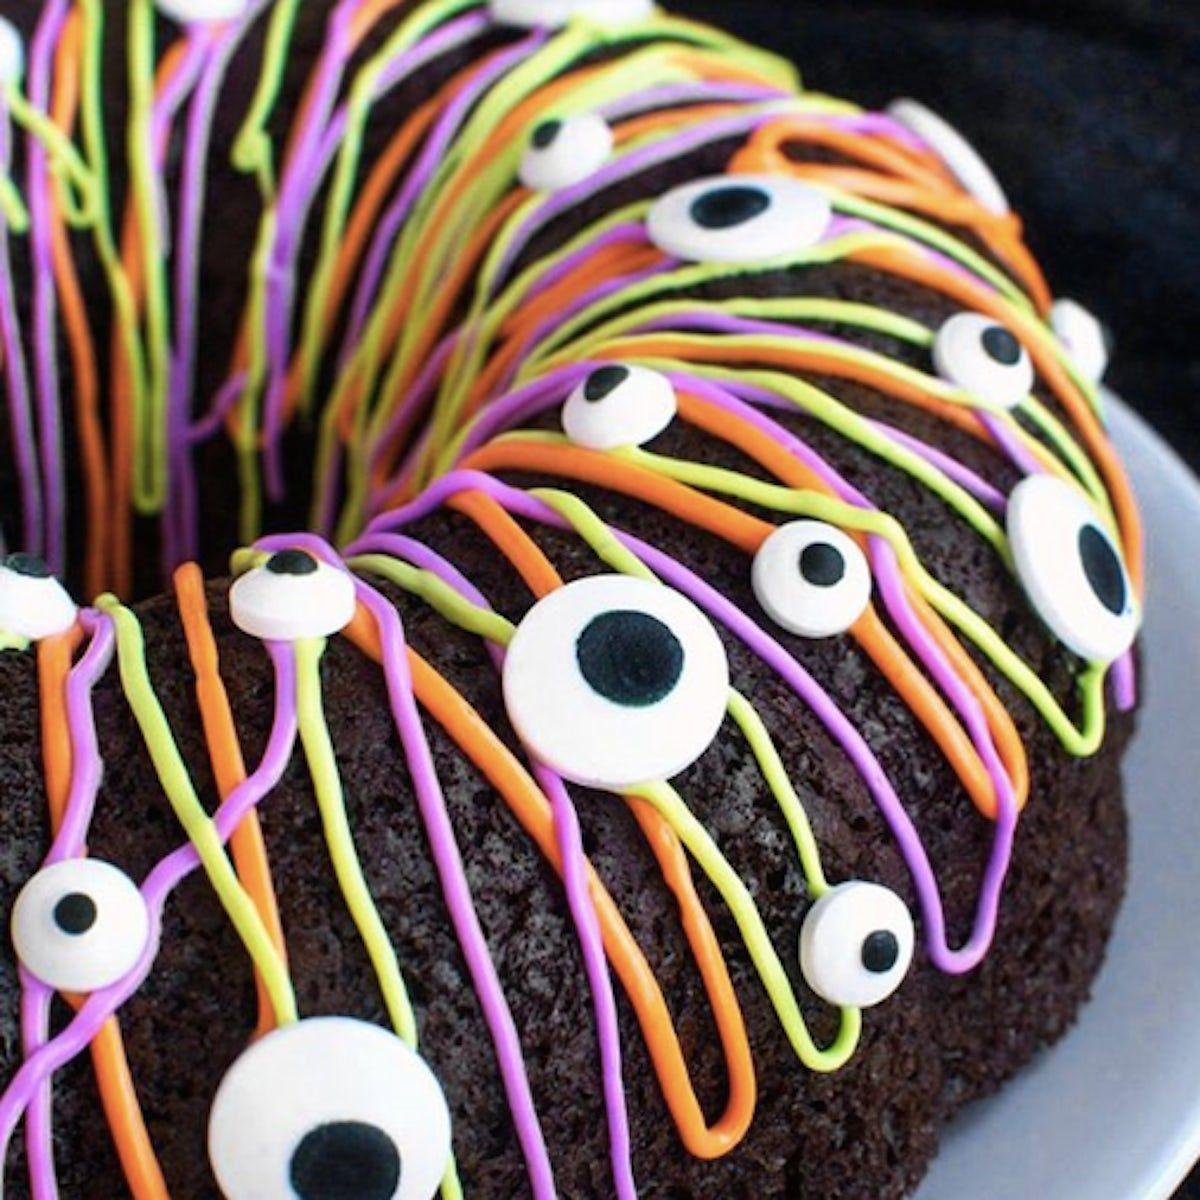 6 Spooky Halloween Cakes That Are Scarily Delicious